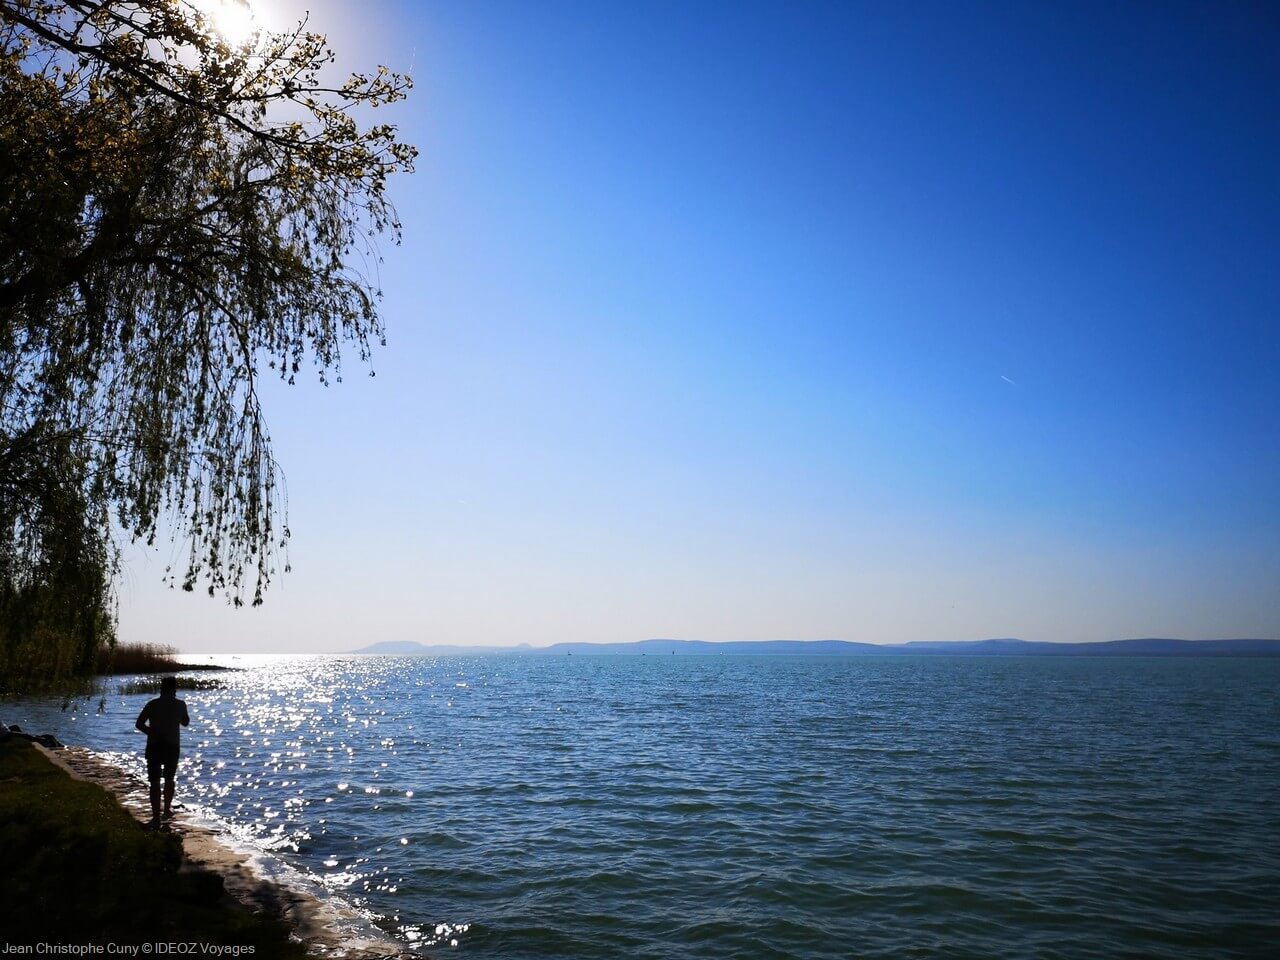 promenade sur les bords du lac balaton